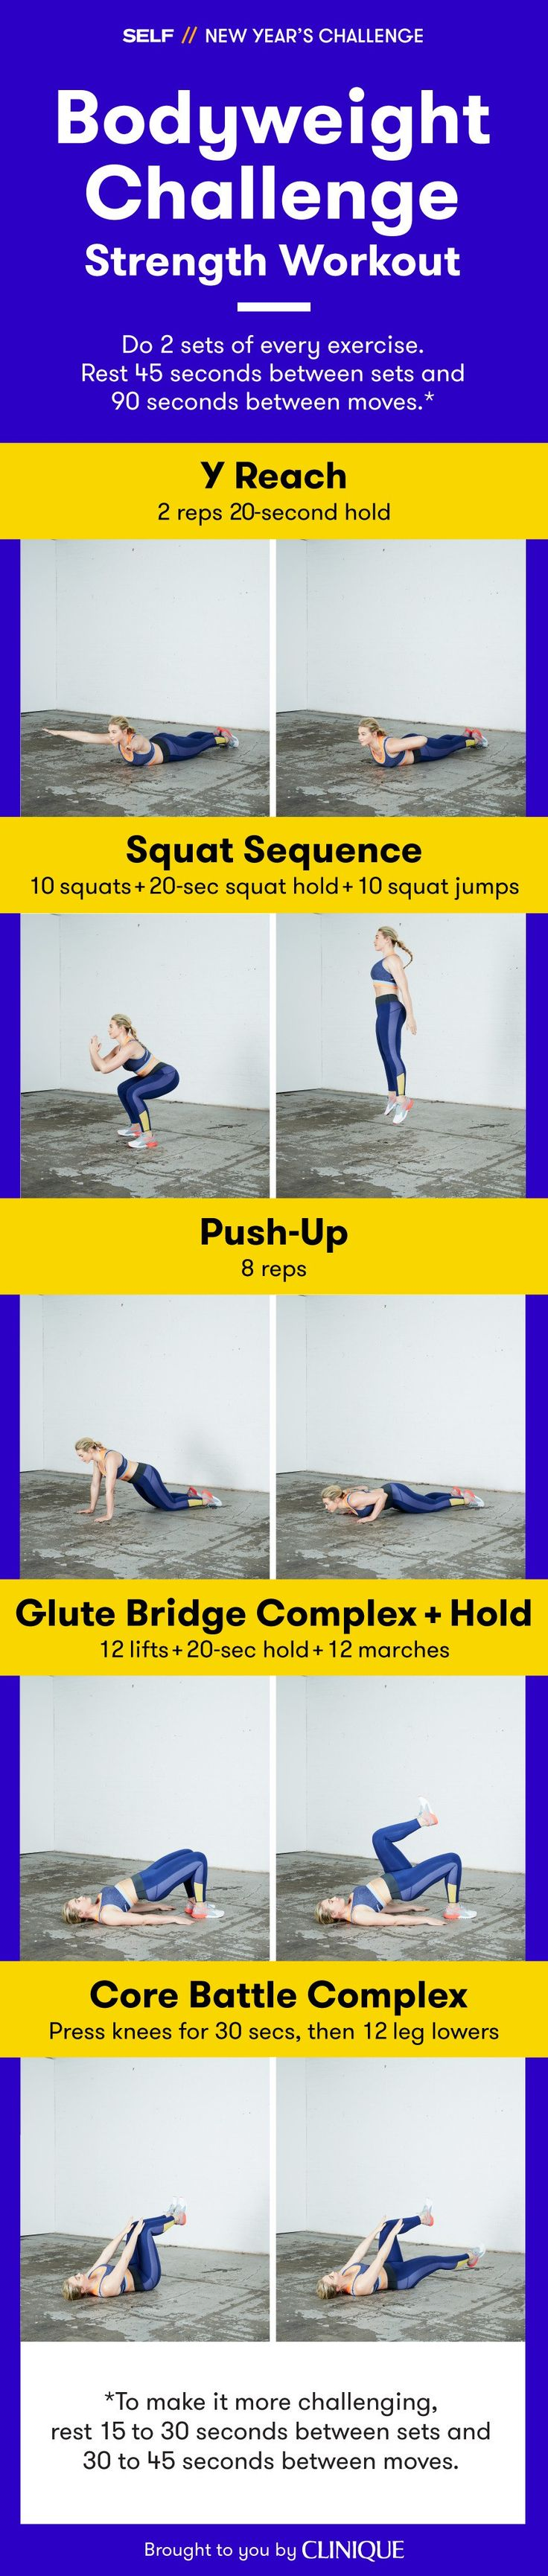 Work every major muscle group without any equipment at all with this bodyweight strength workout from SELF's New Year's Challenge.